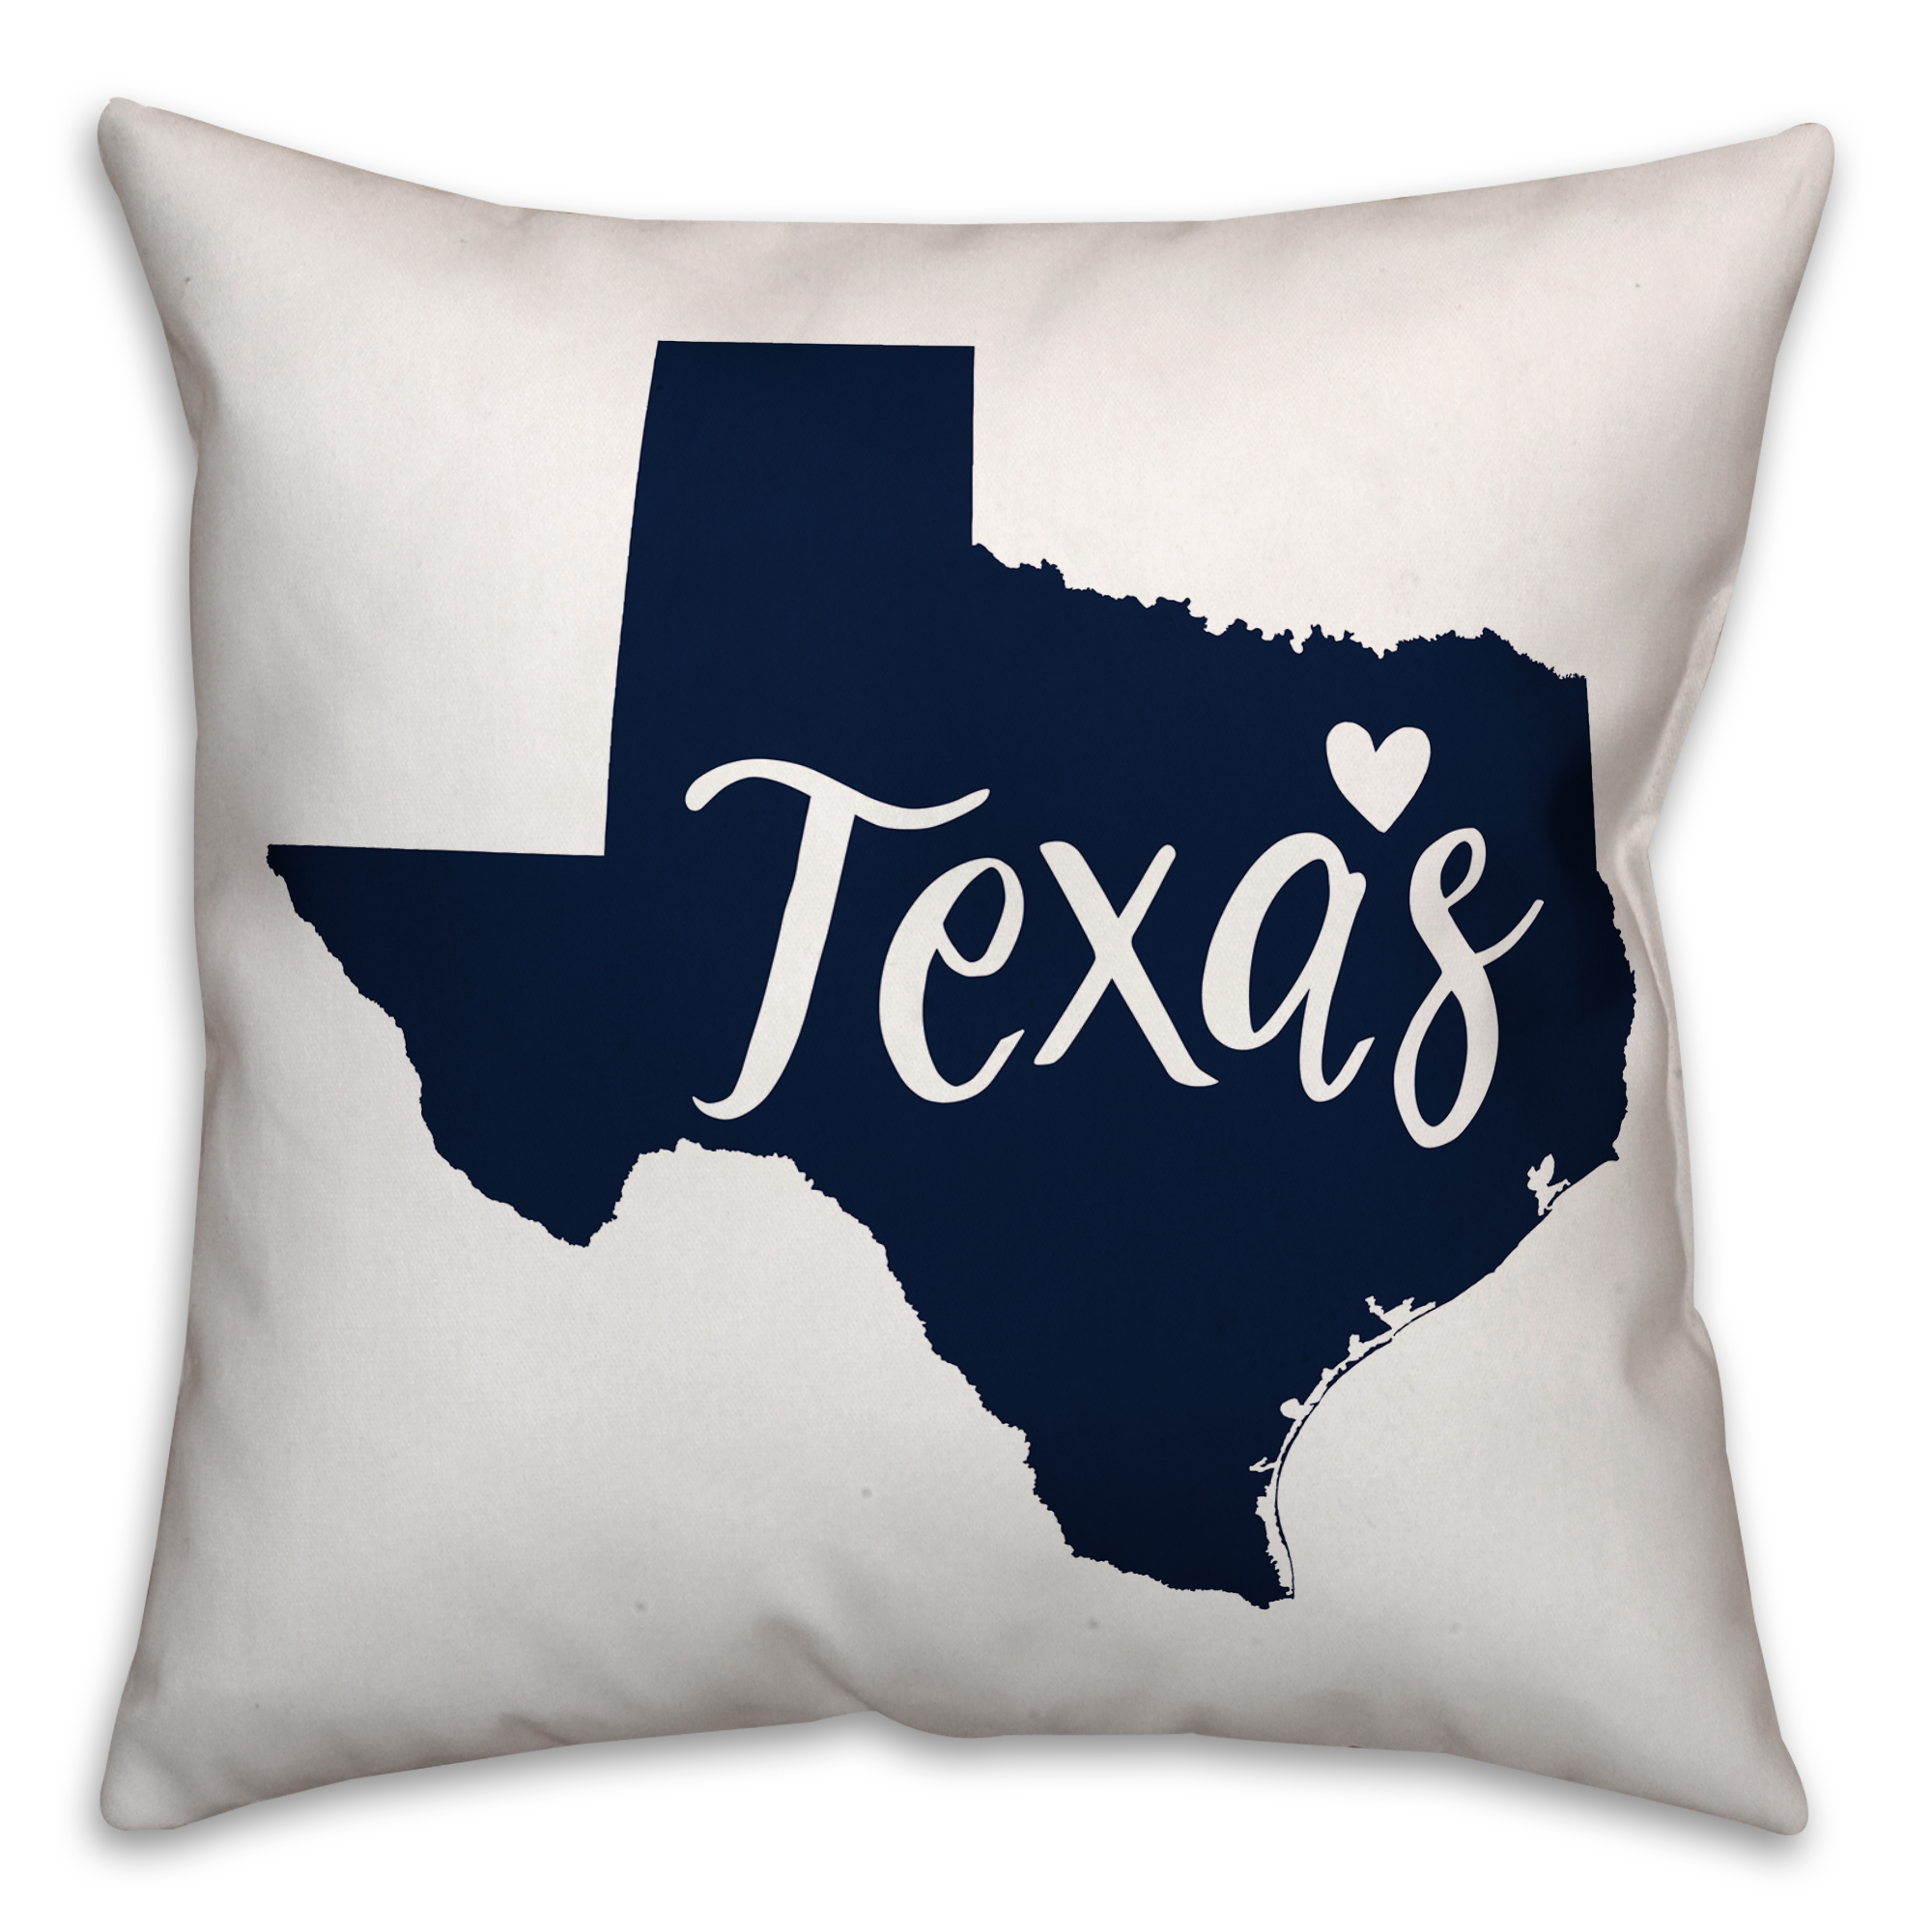 Blue and White Texas Pride 16x16 Spun Poly Pillow